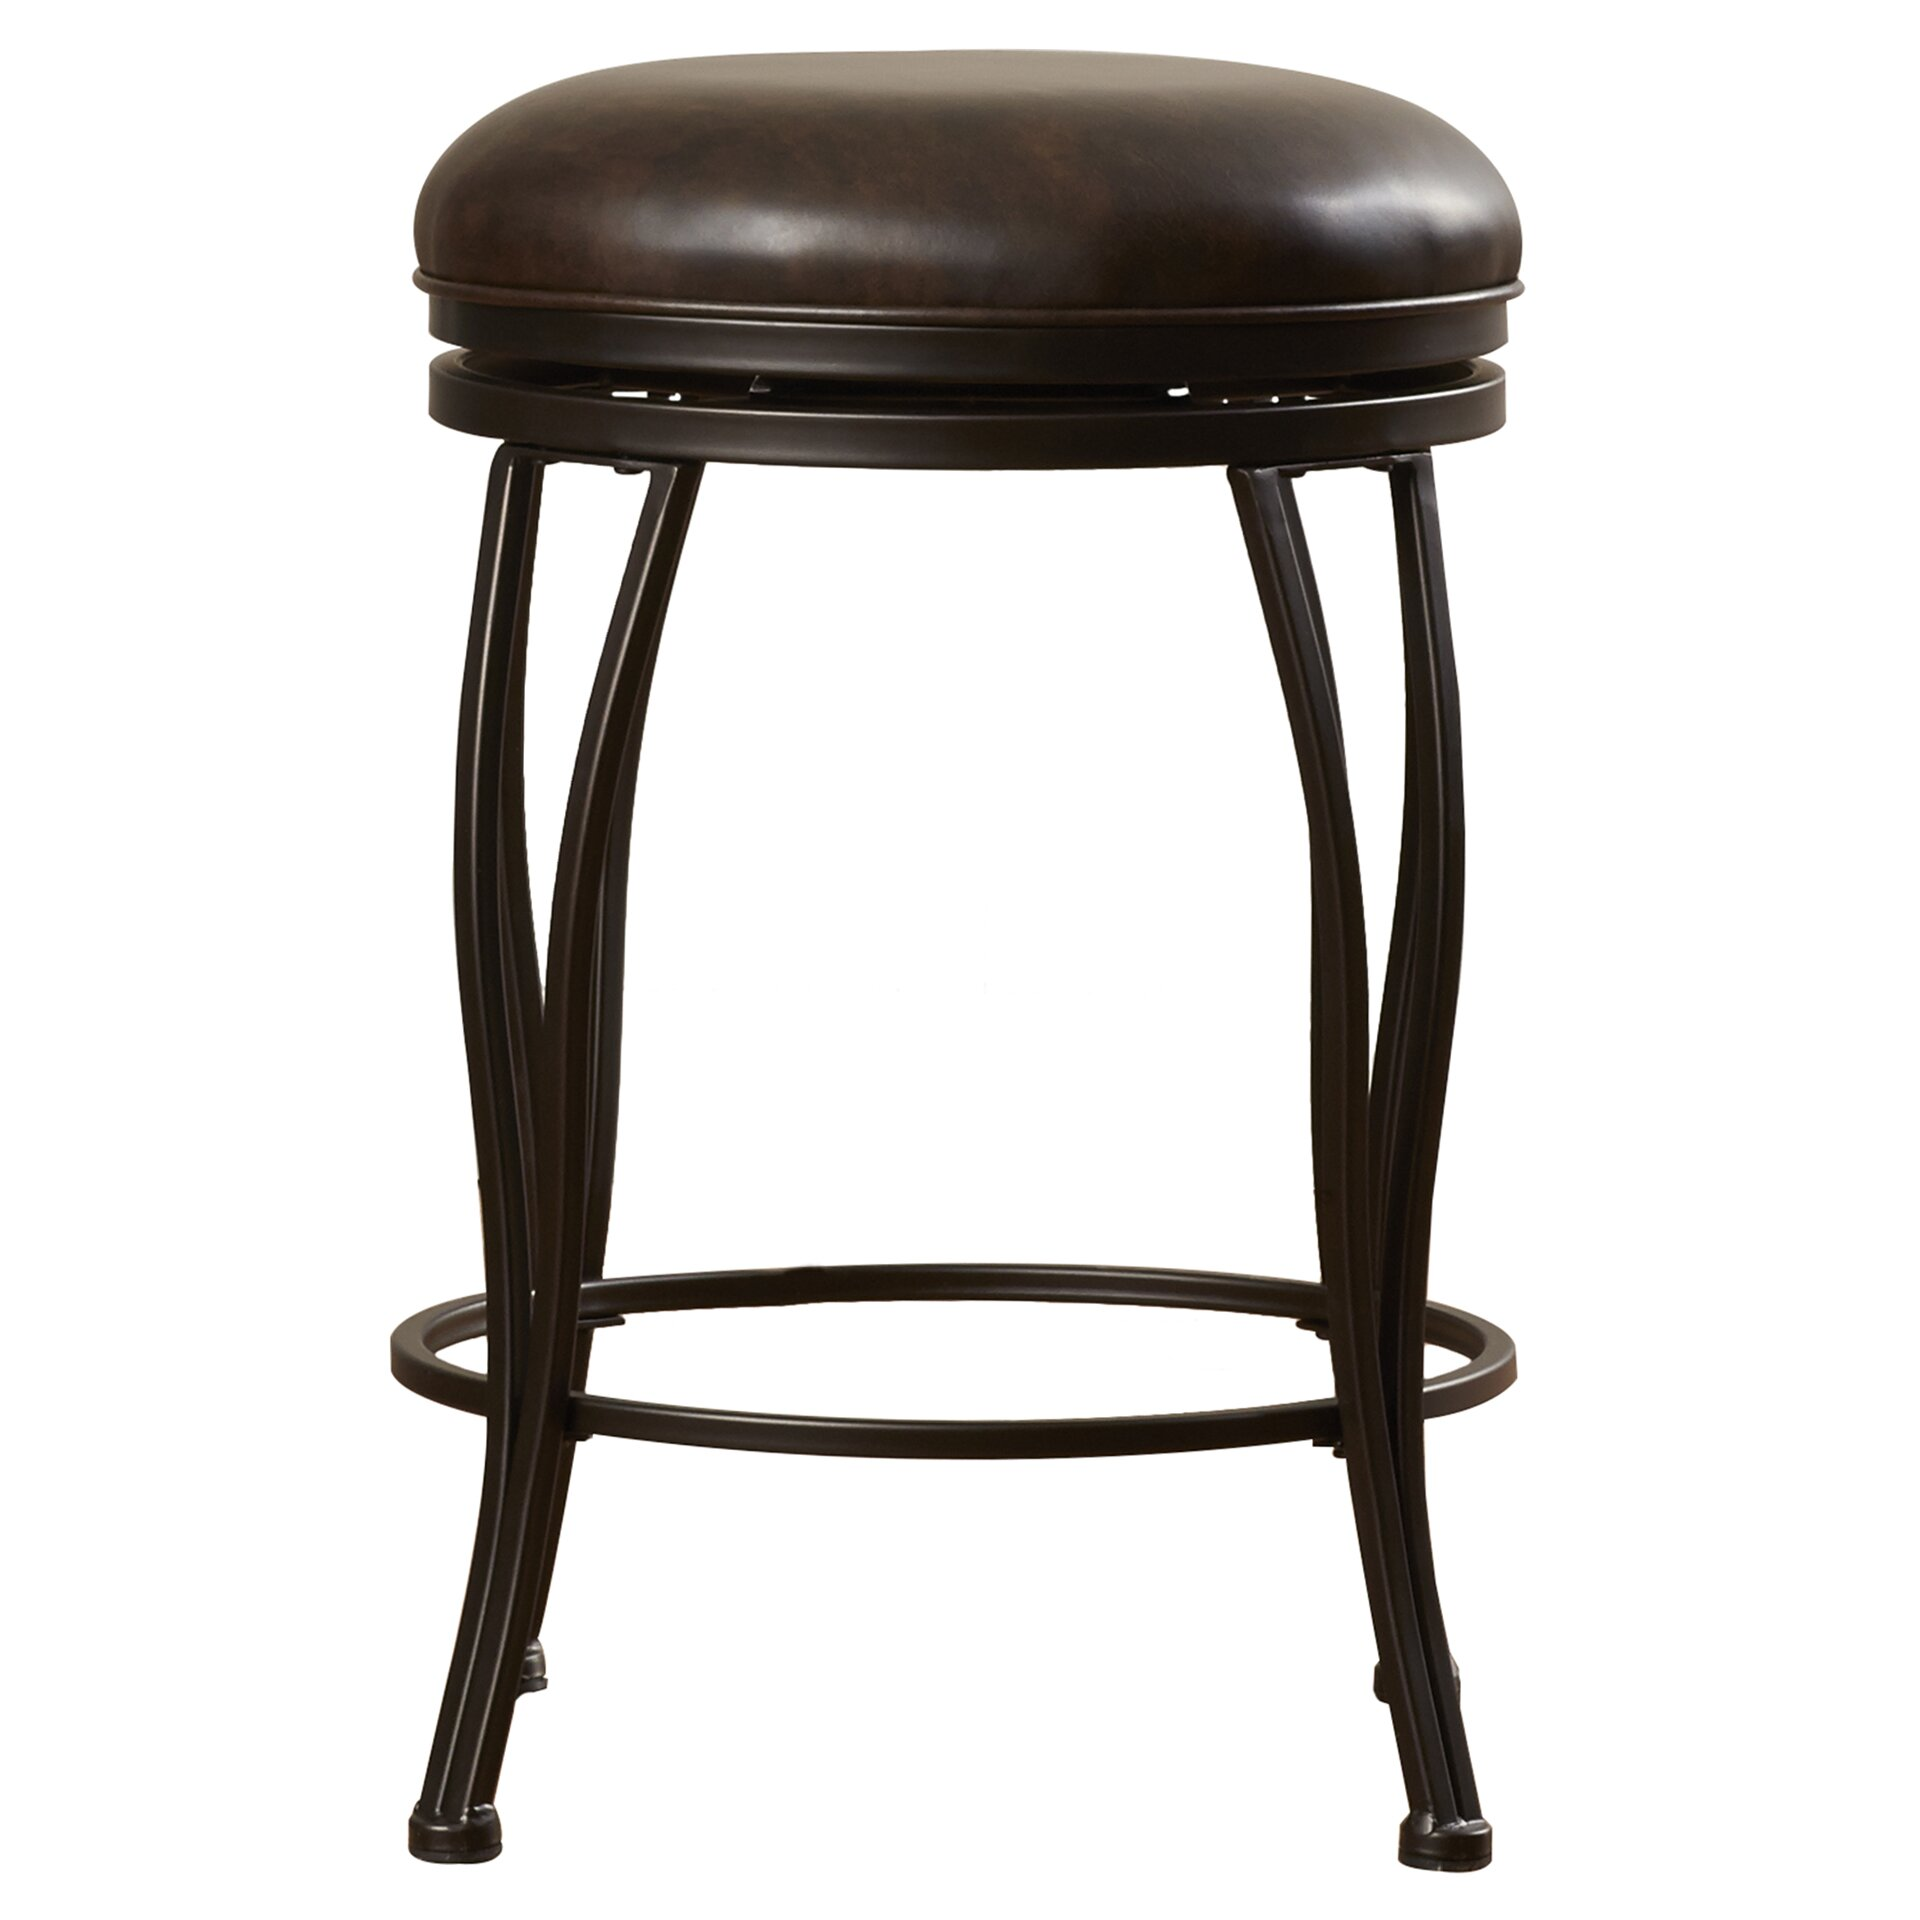 Alcott Hill Pagnano 24 Quot Swivel Bar Stool With Cushion